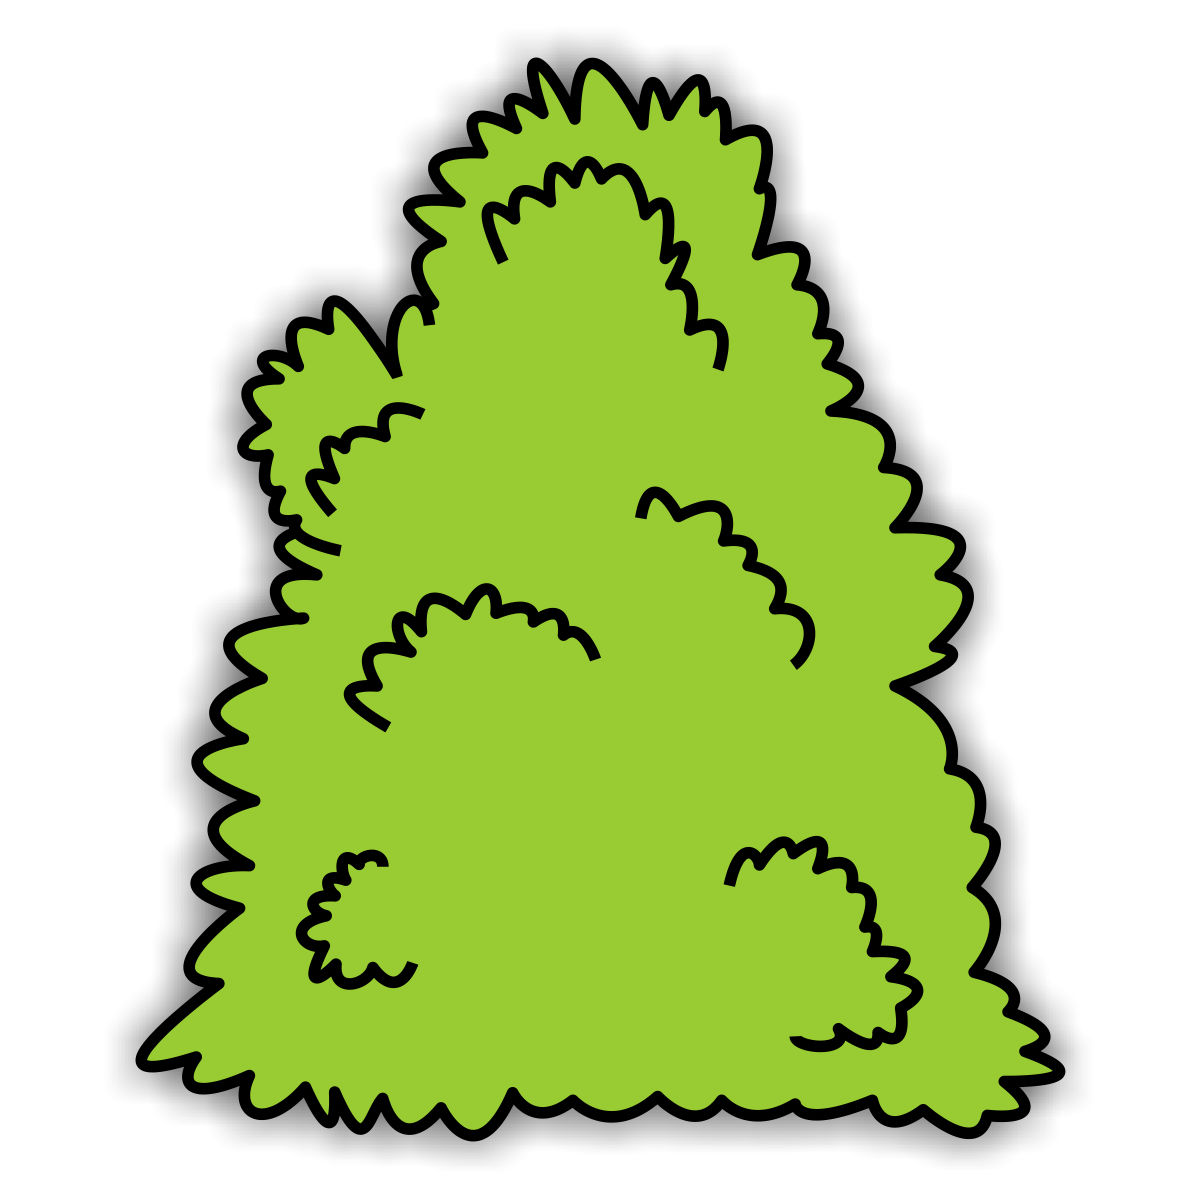 Bushes clipart cotton. Jungle leaves at getdrawings